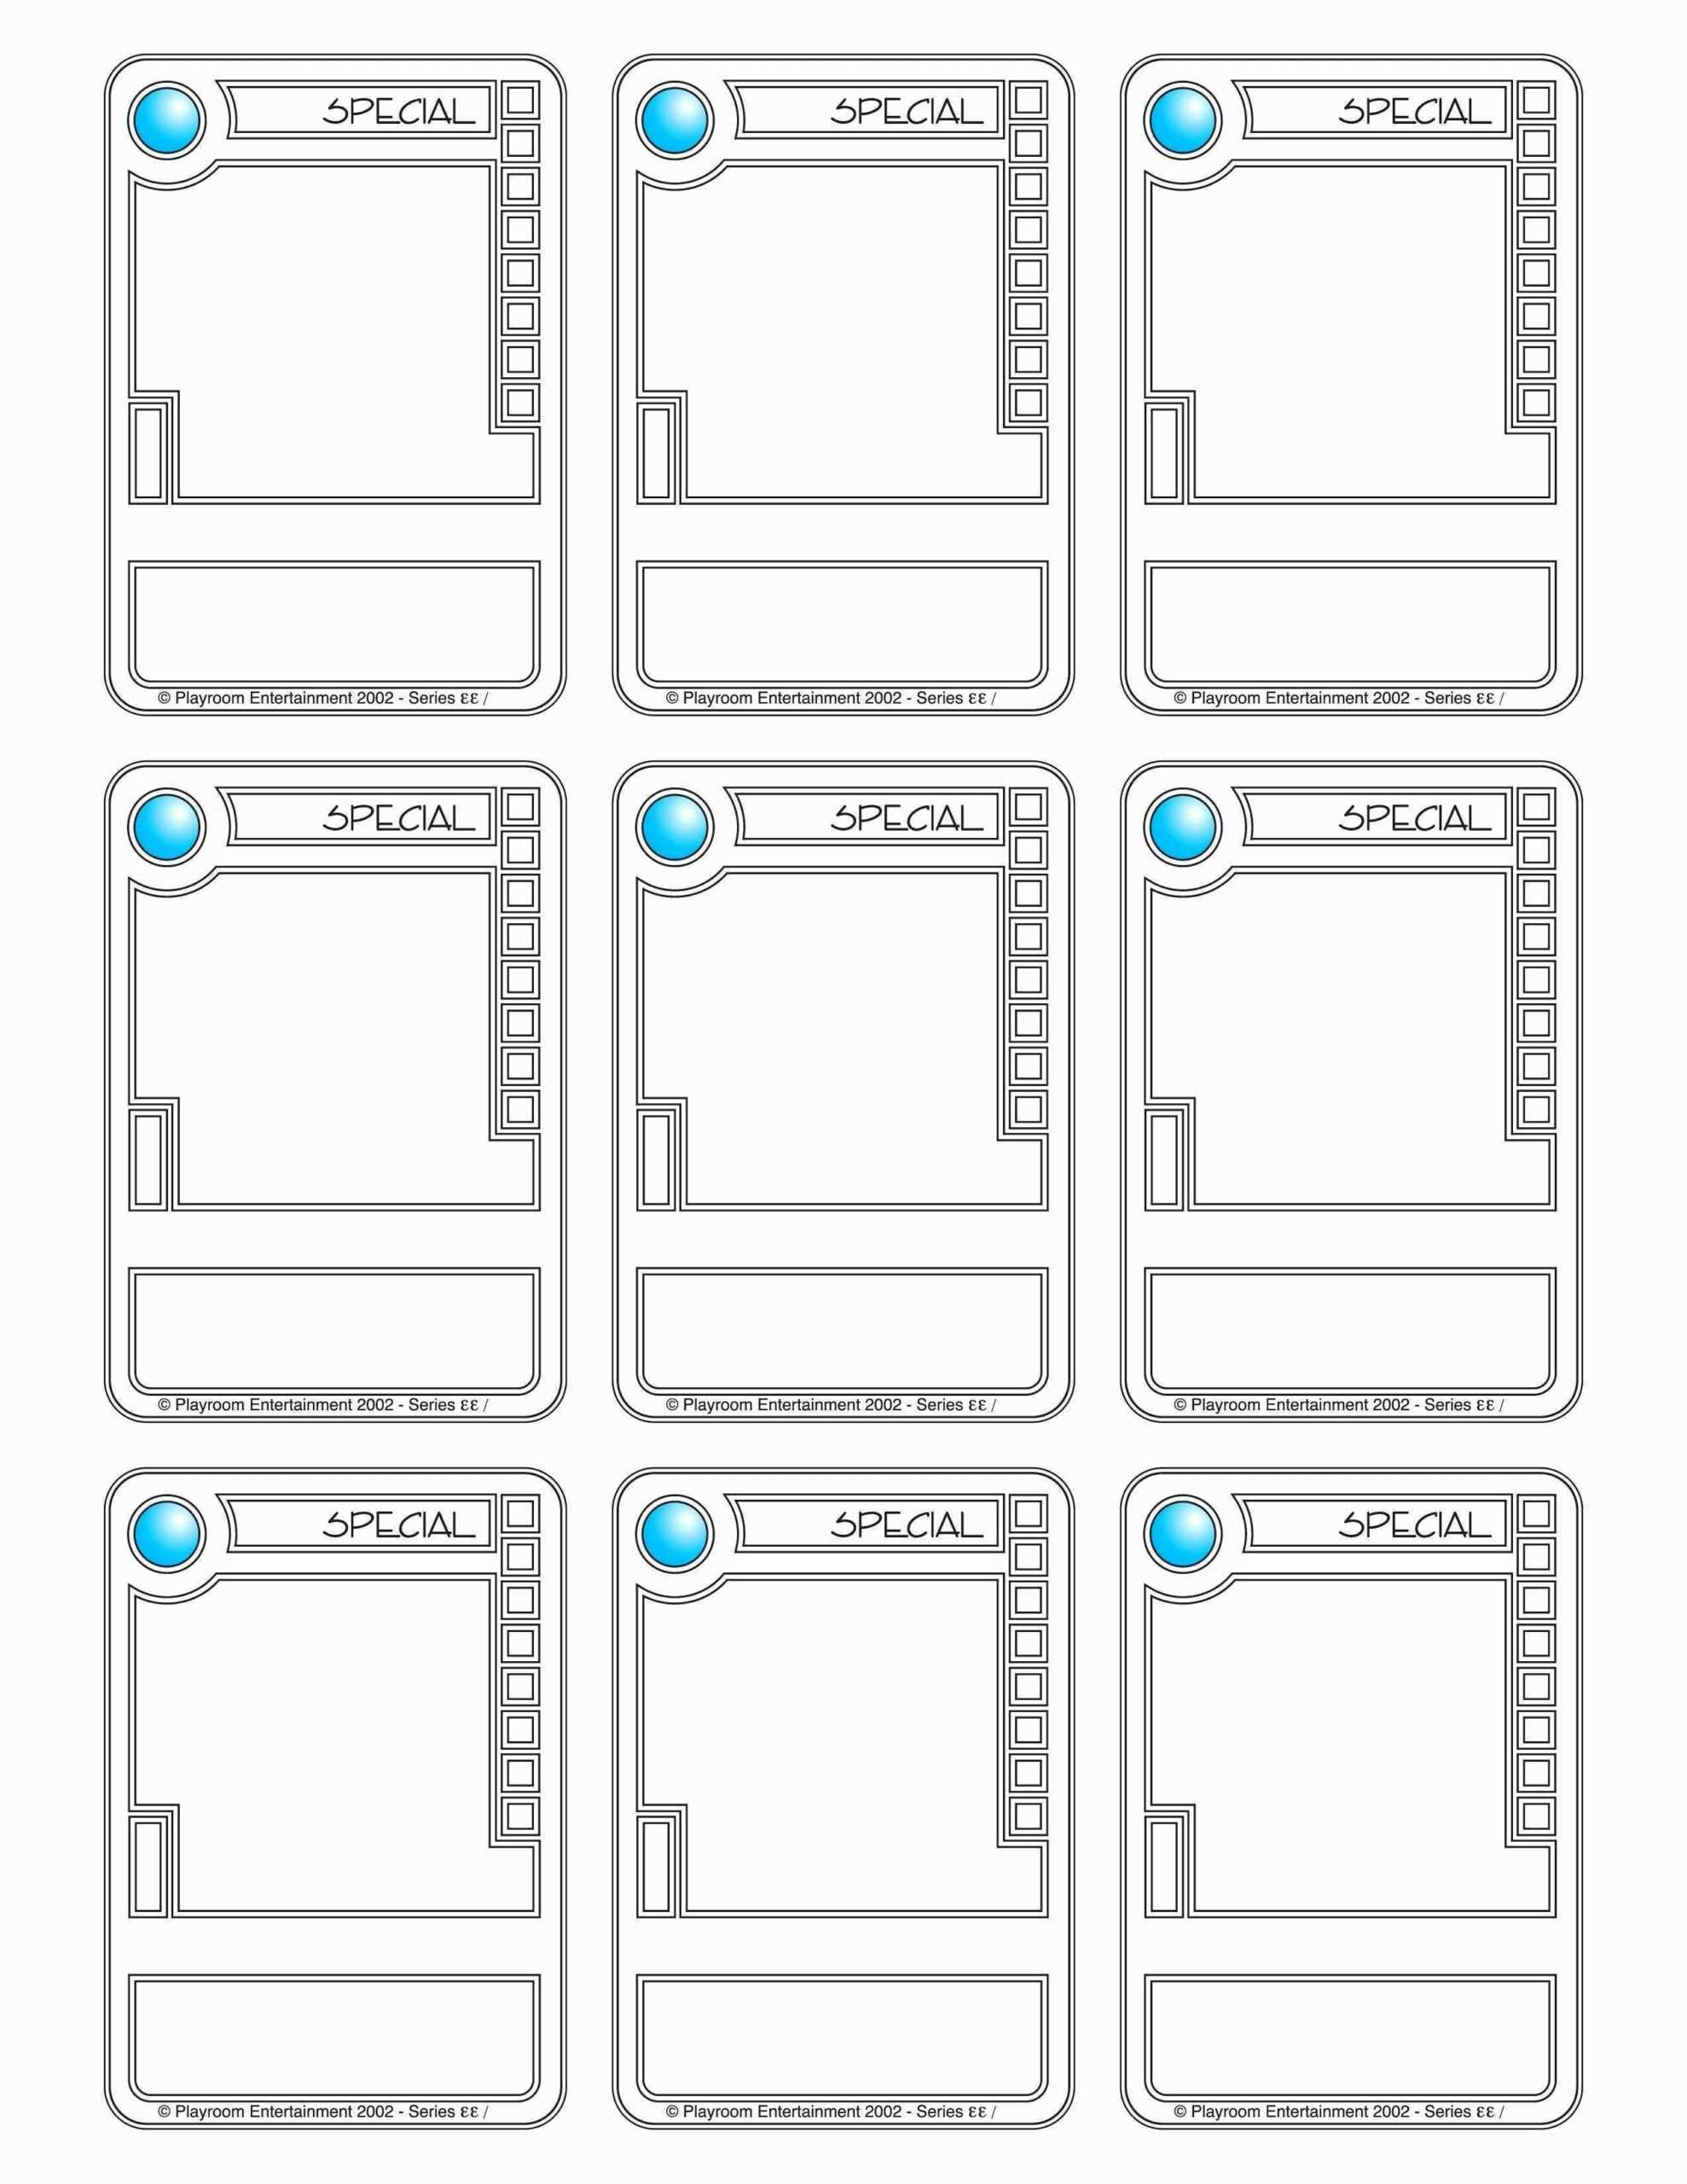 001 Examples Free Trading Card Template Maker For Success In with regard to Trading Cards Templates Free Download